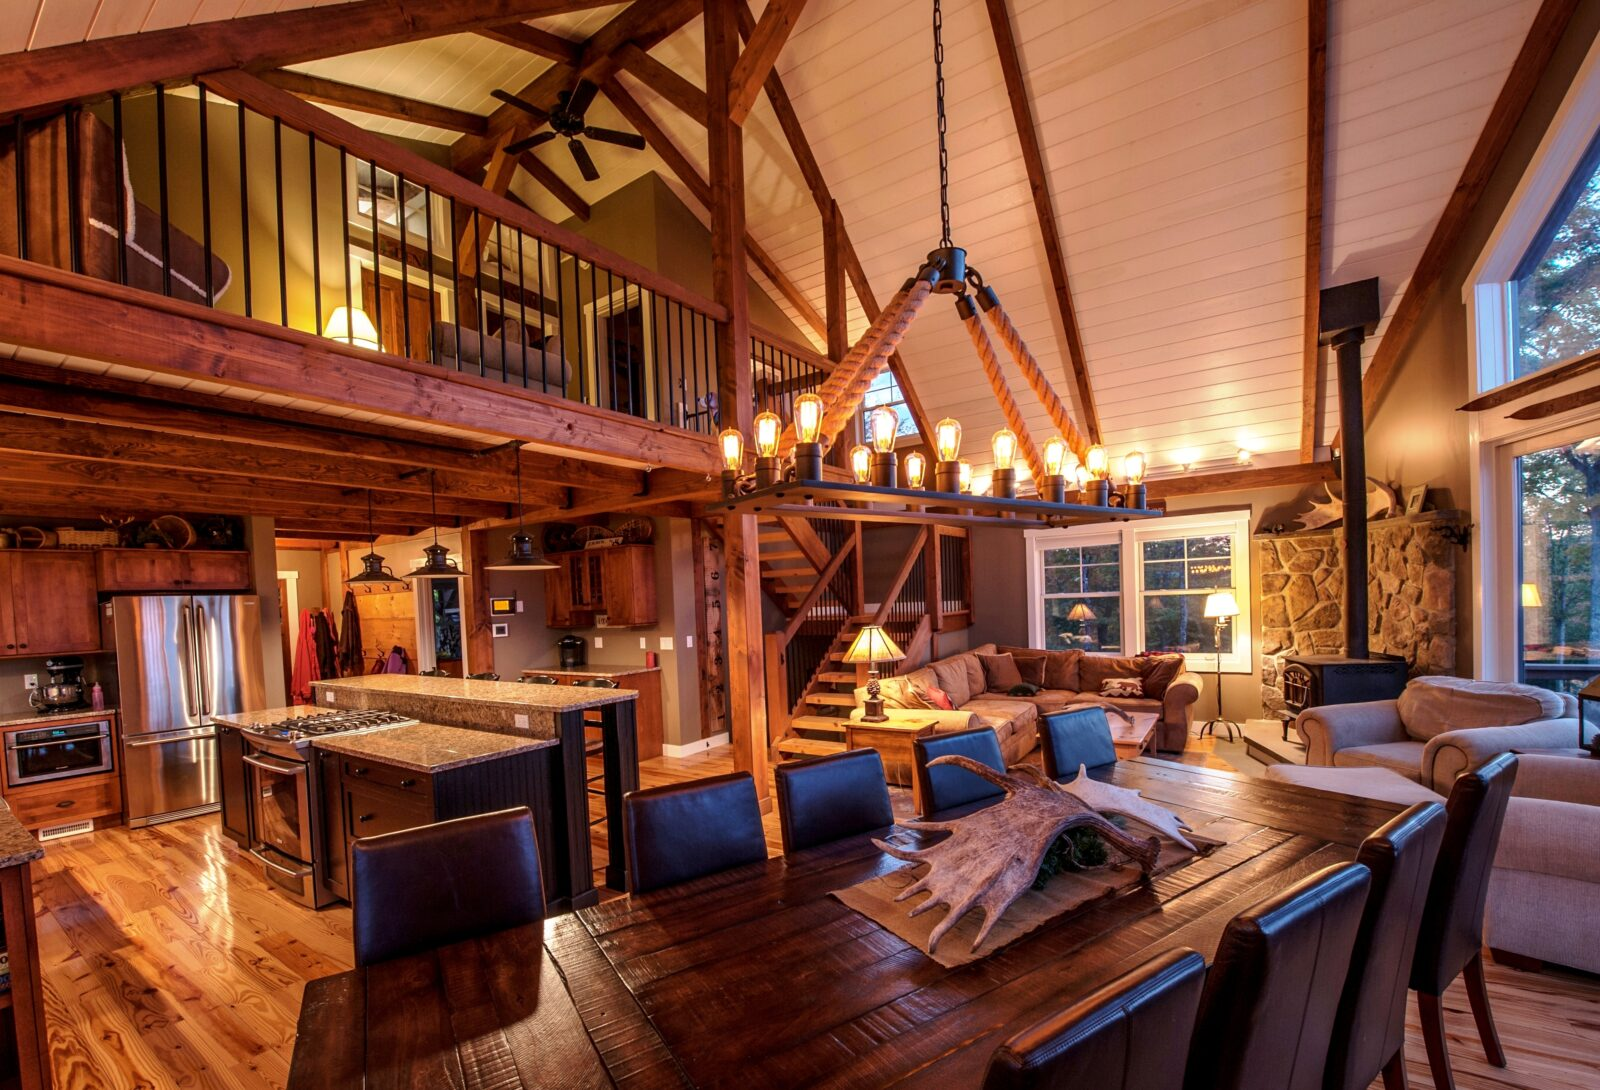 The Barn House Loft at Moose Ridge Lodge – Yankee Barn Homes Floor Plans